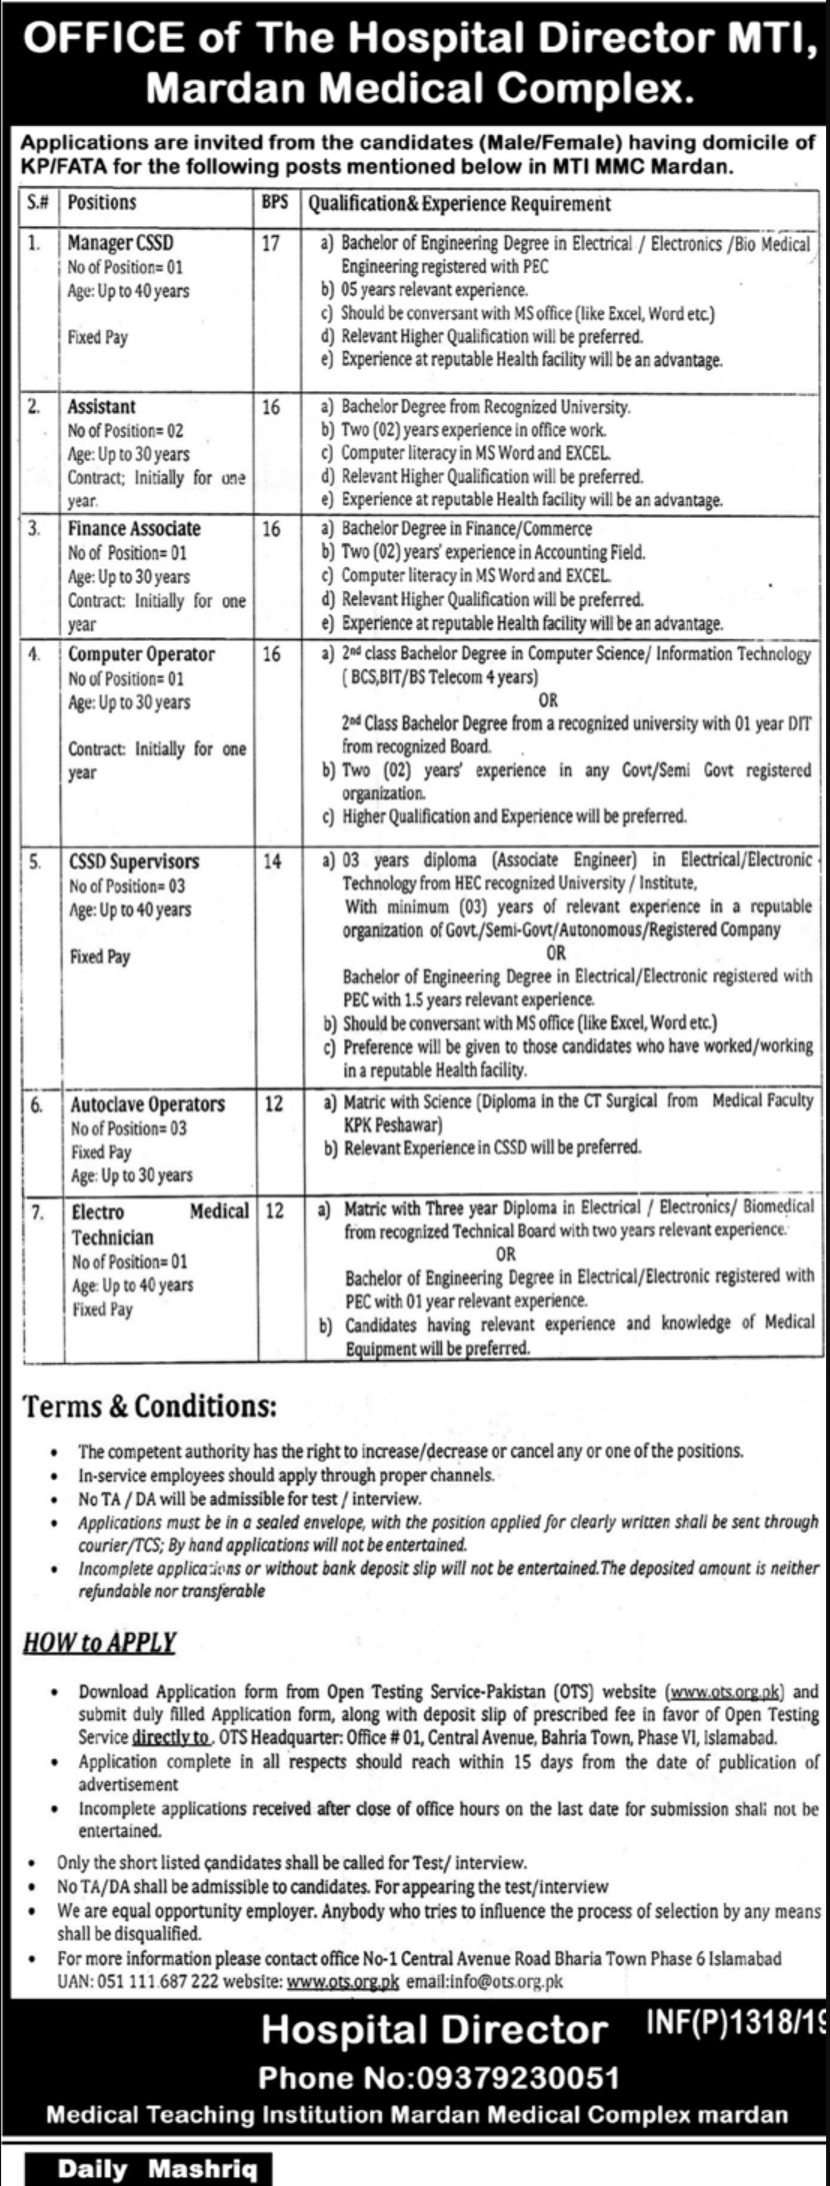 MTI Mardan Medical Complex Jobs 2019 MMC KPK Apply through ots.org.pk